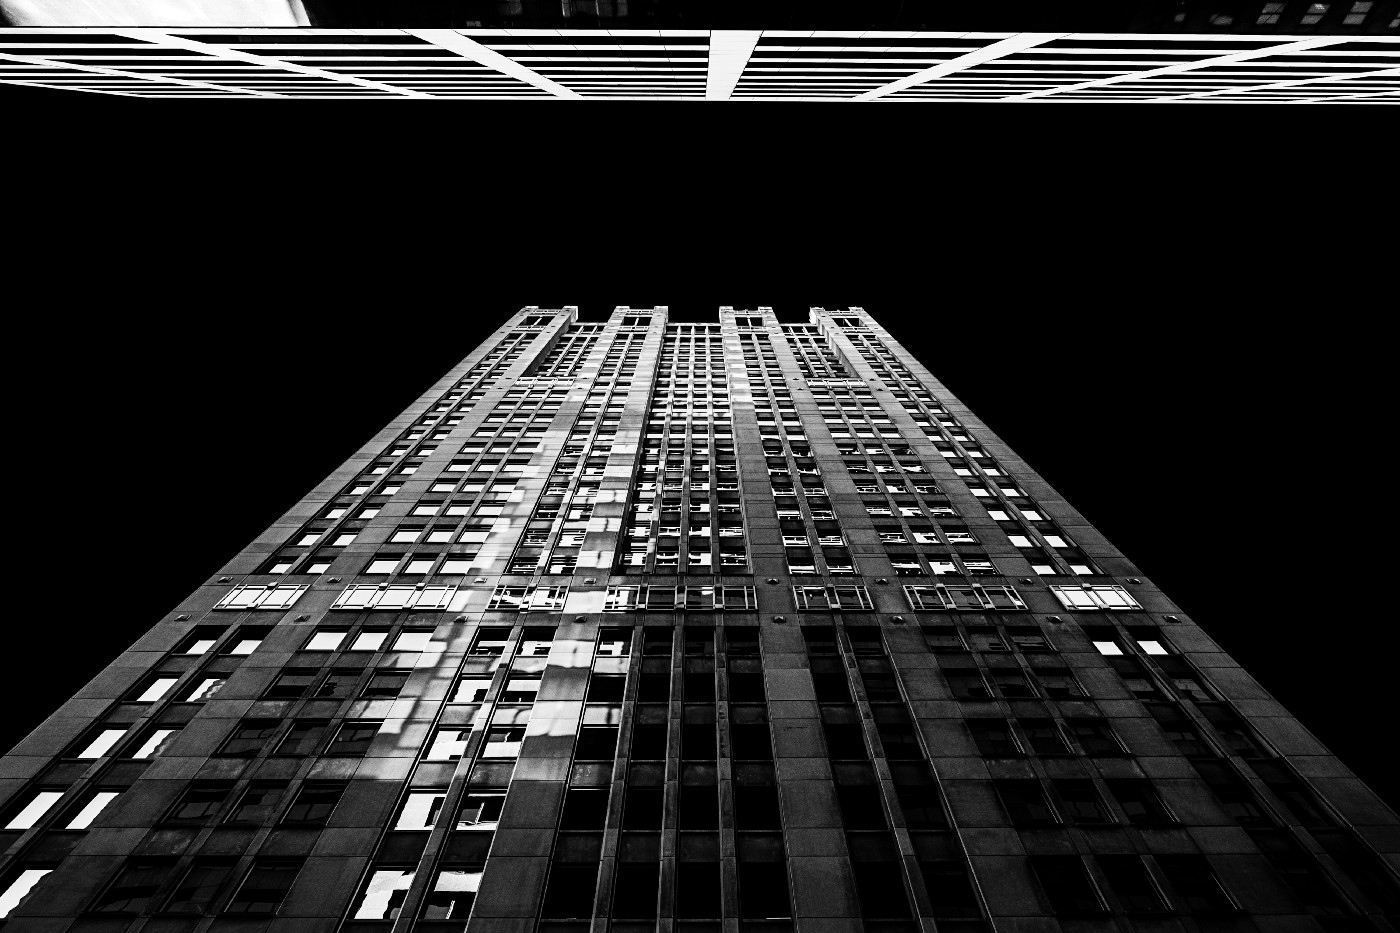 Black and white picture of a skyscraper, photographed from the bottom looking up at the building reaching to the sky.